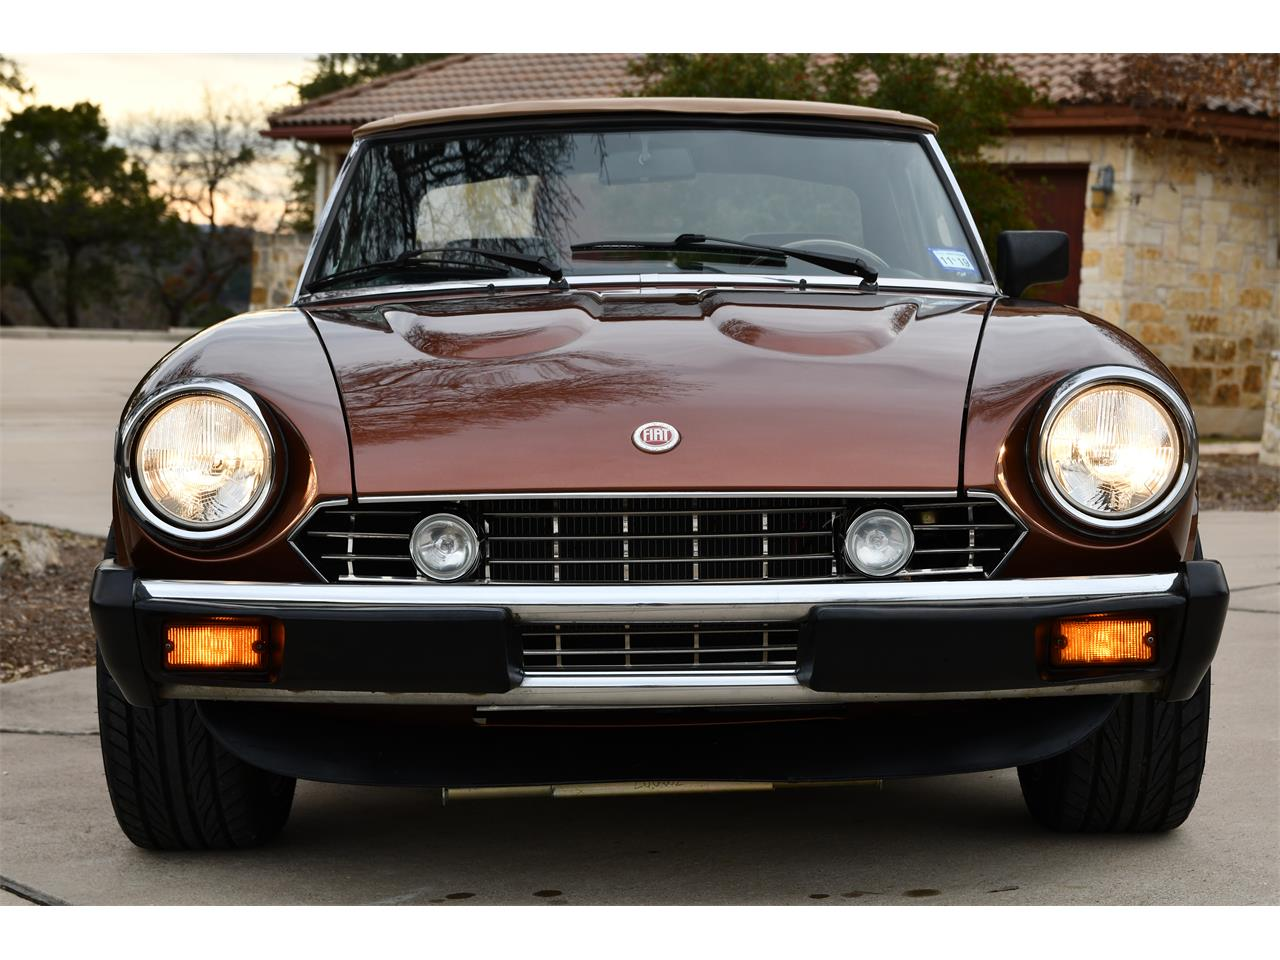 1982 Fiat Spider for sale in Spicewood, TX – photo 2